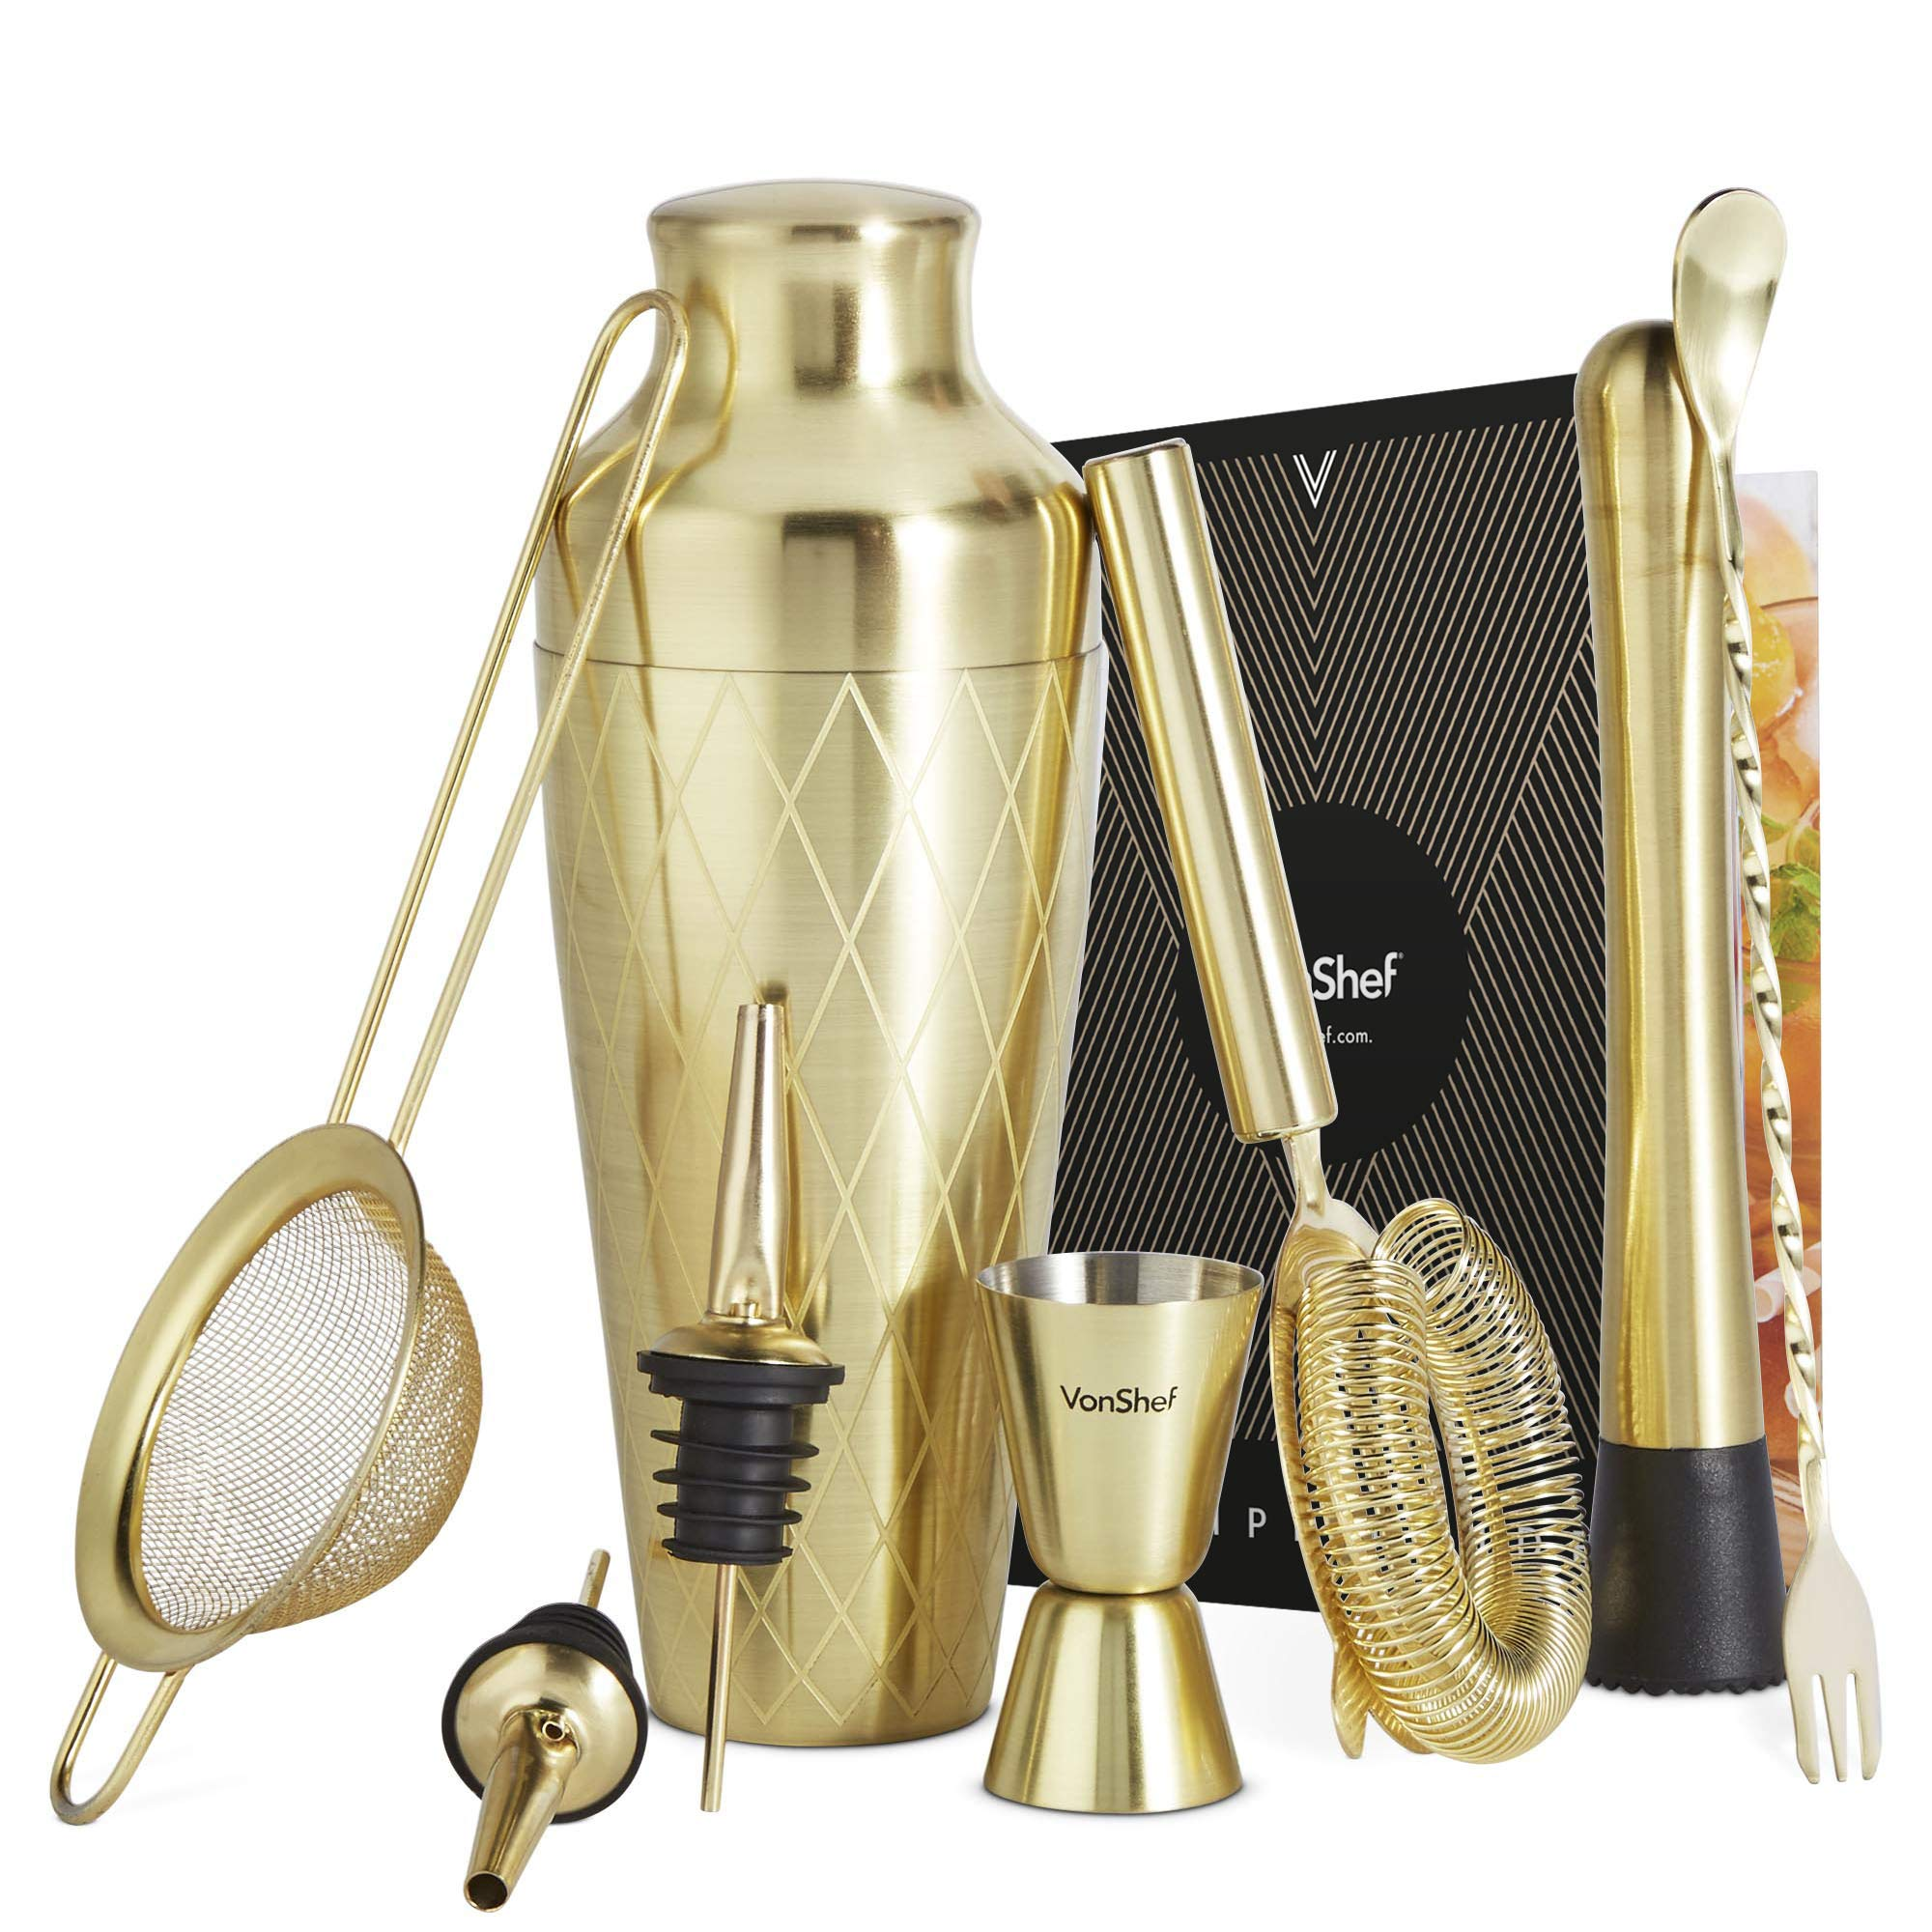 VonShef 9pc Gold Parisian Cocktail Shaker Bartender Set with Gift Box, Recipe Guide, Muddler, Jigger, Cocktail Strainers, Bar Spoon and Bottle Pourers